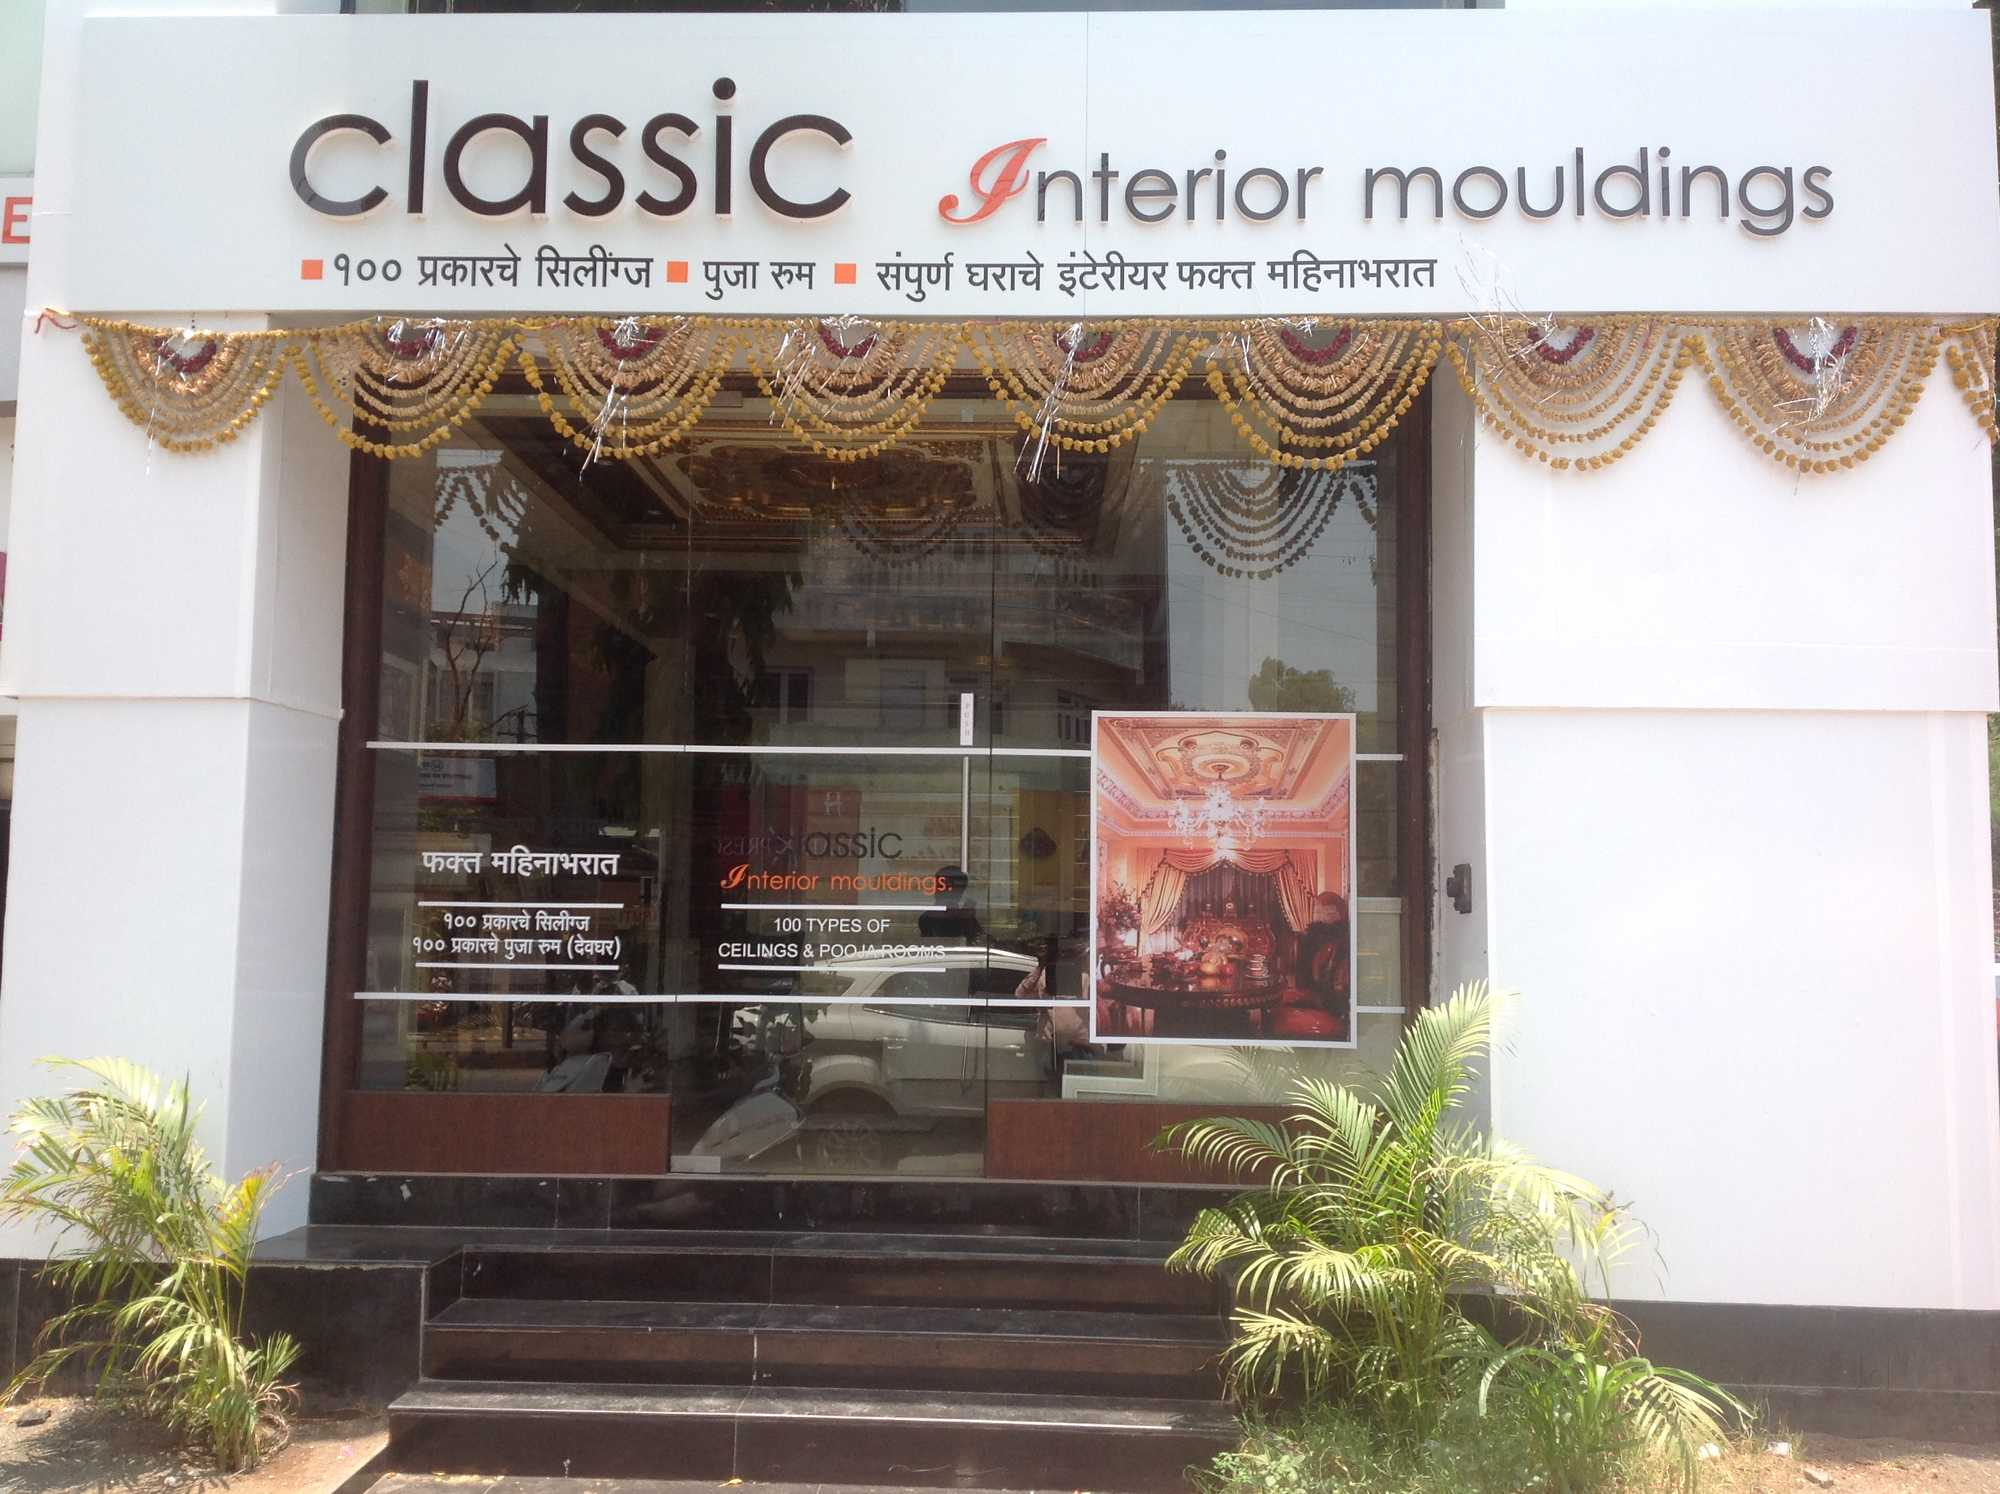 Classic Interior Mouldings College Road Interior Decorators In Nashik Justdial